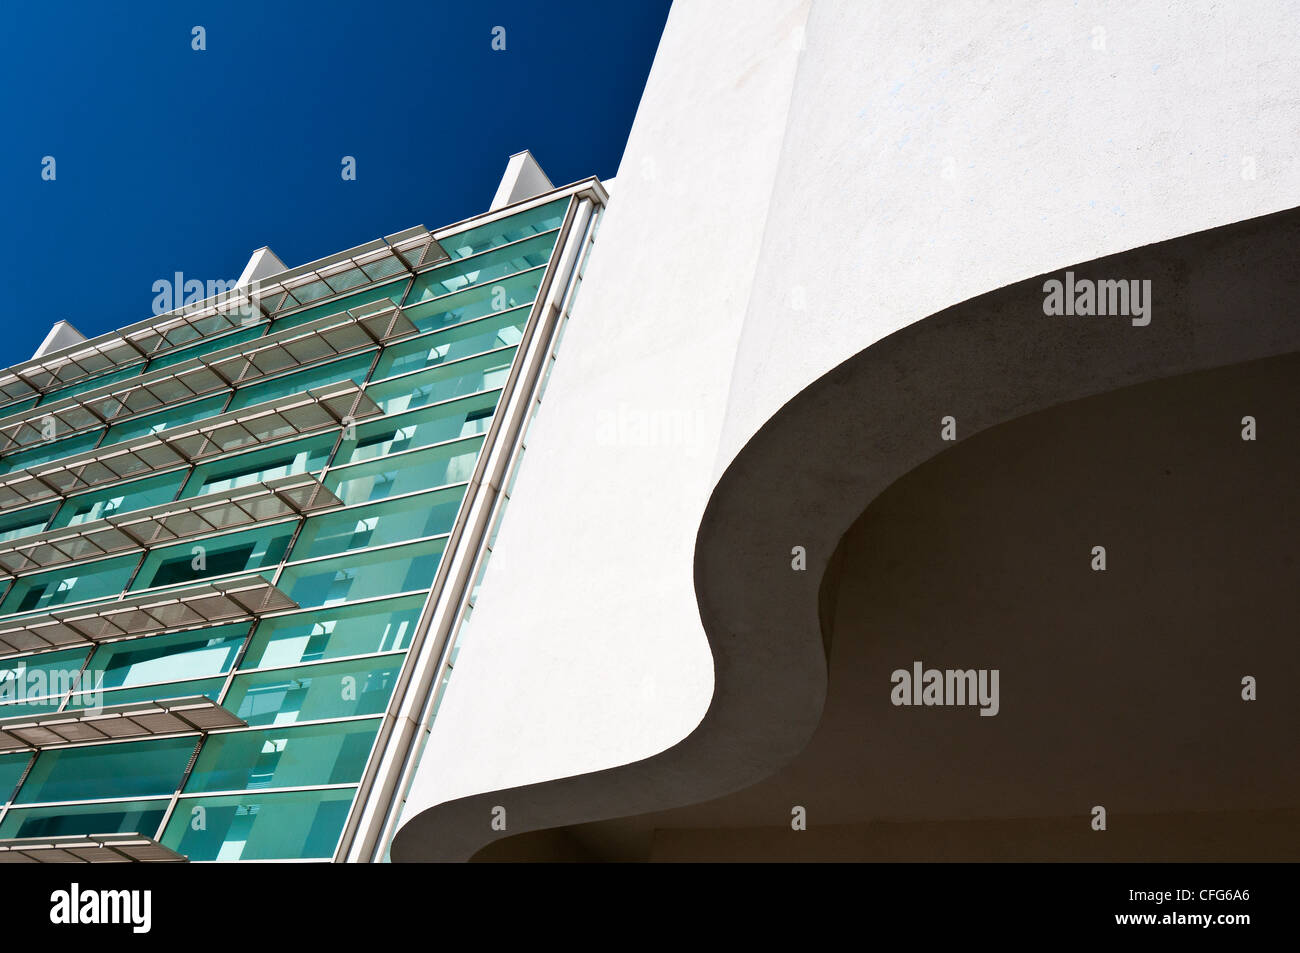 Barcelona Museum of Contemporary Art (MACBA), Barcelona, Catalonia, Spain - Stock Image